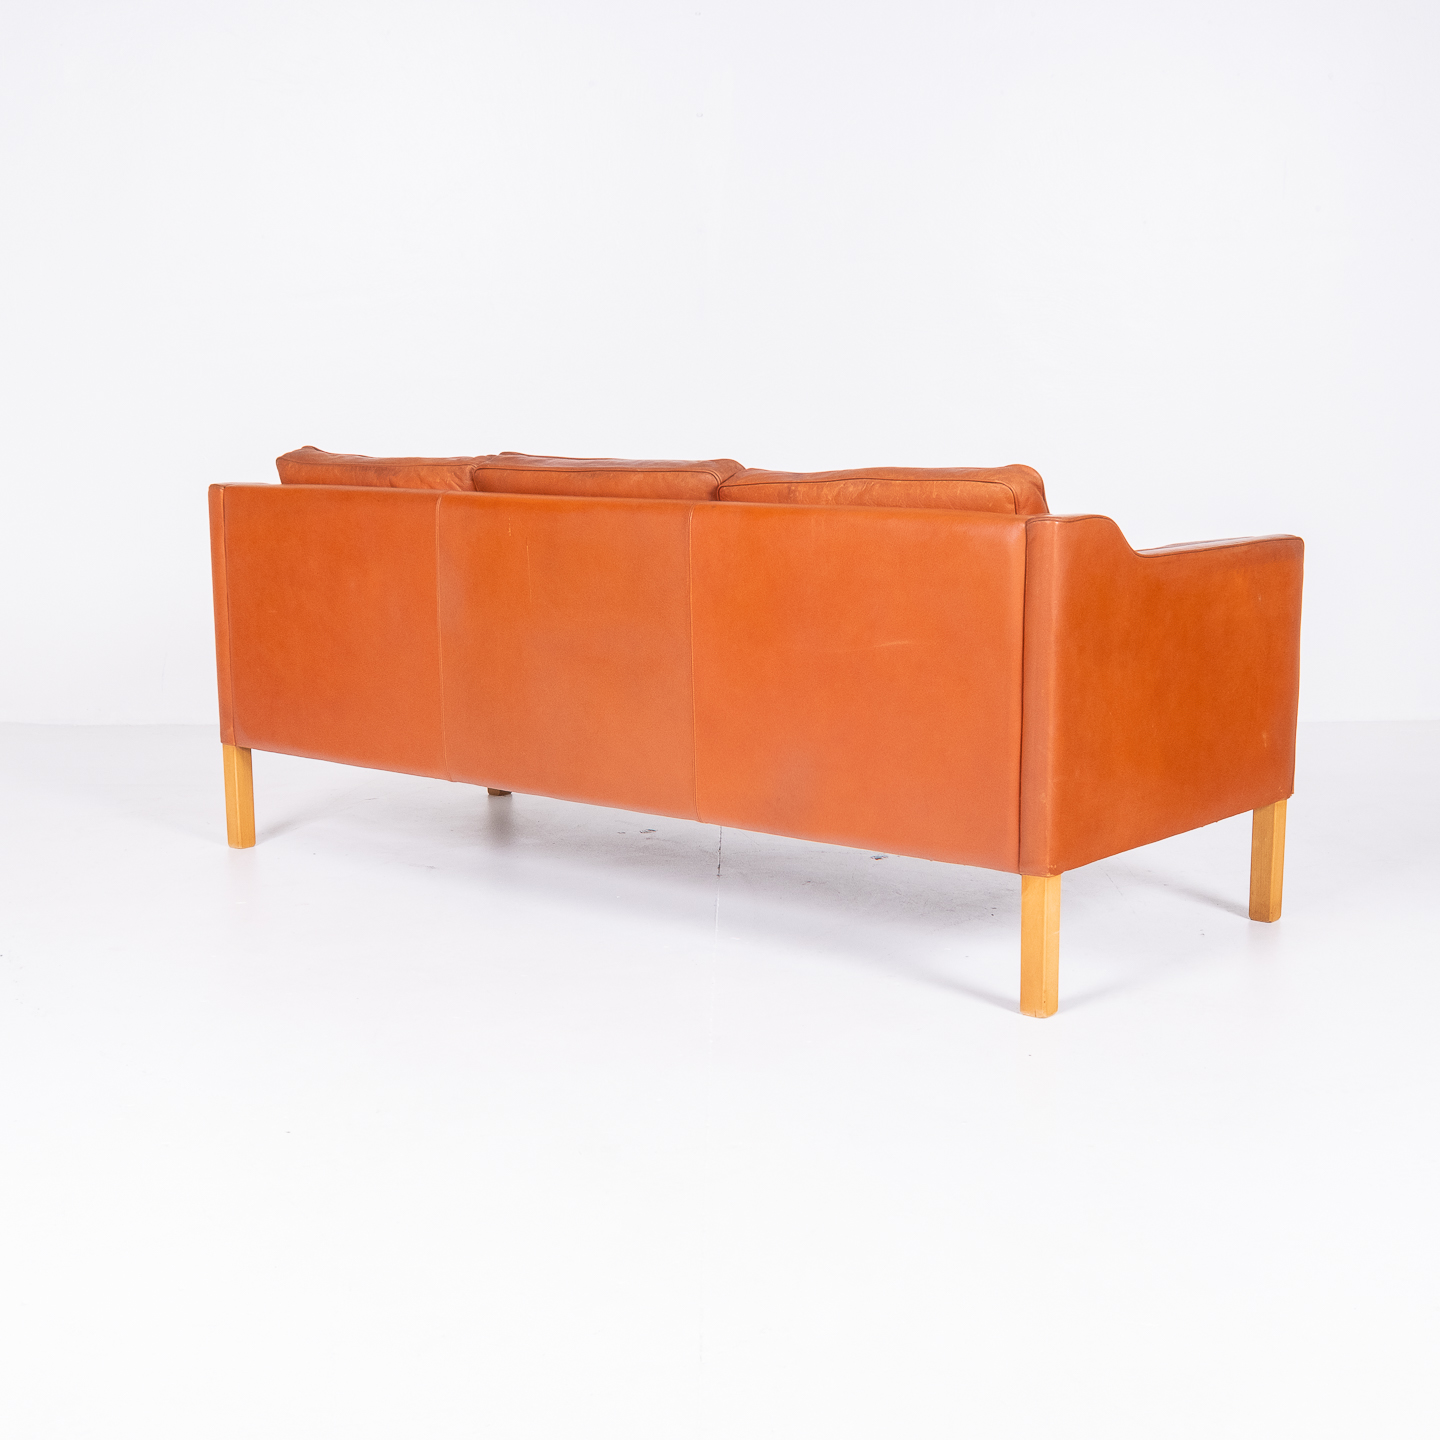 3 Seat Sofa In Tan Leather By Thams, 1960s, Denmark00006